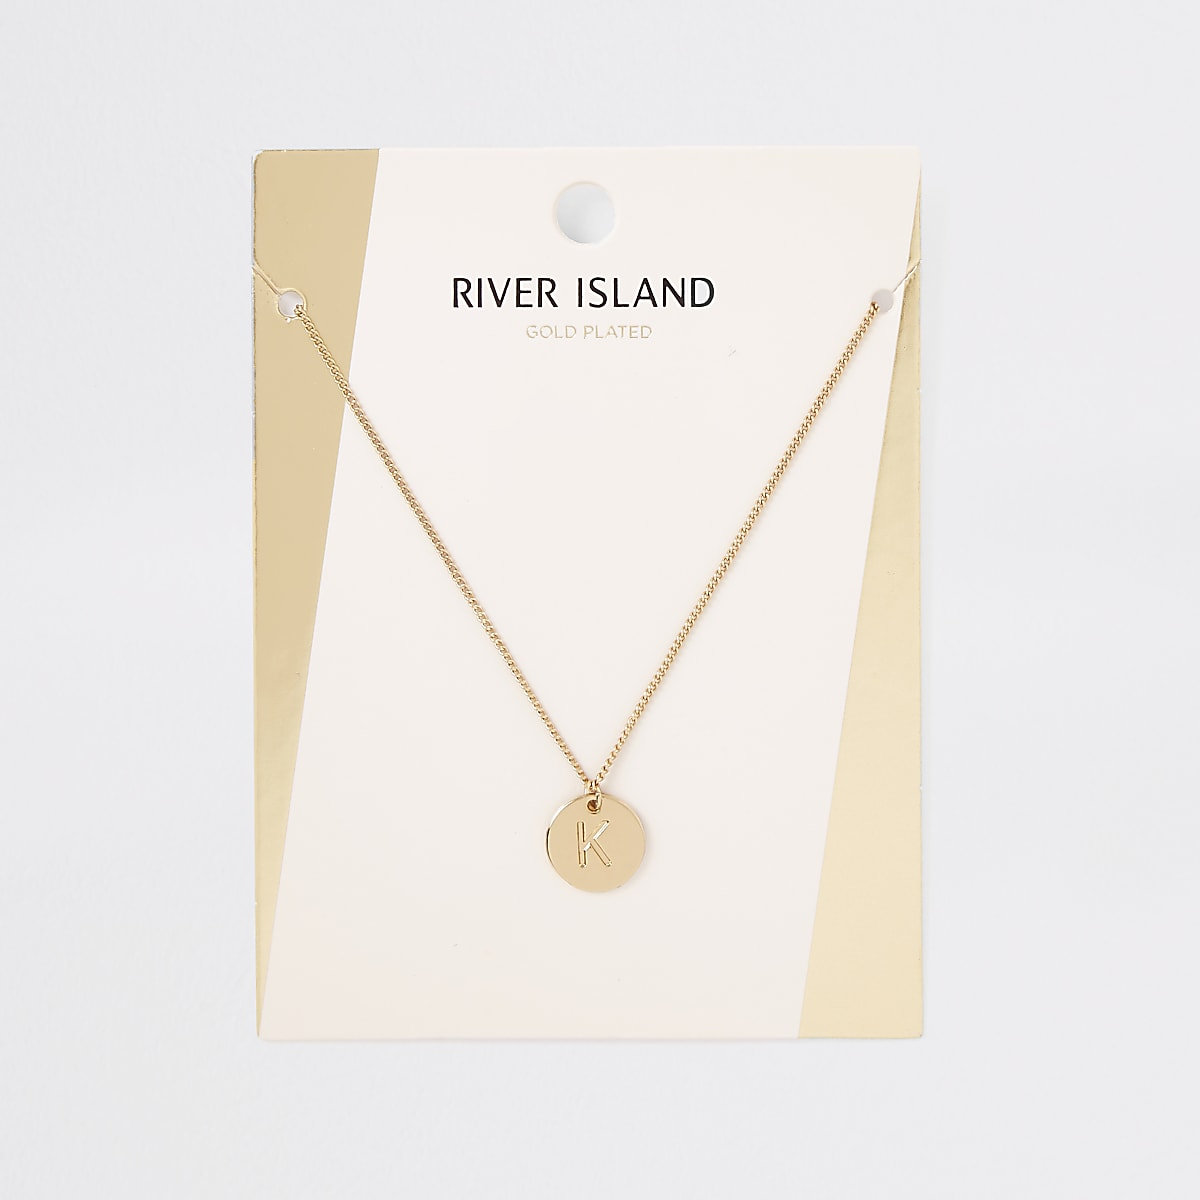 Gold plated 'K' engraved necklace